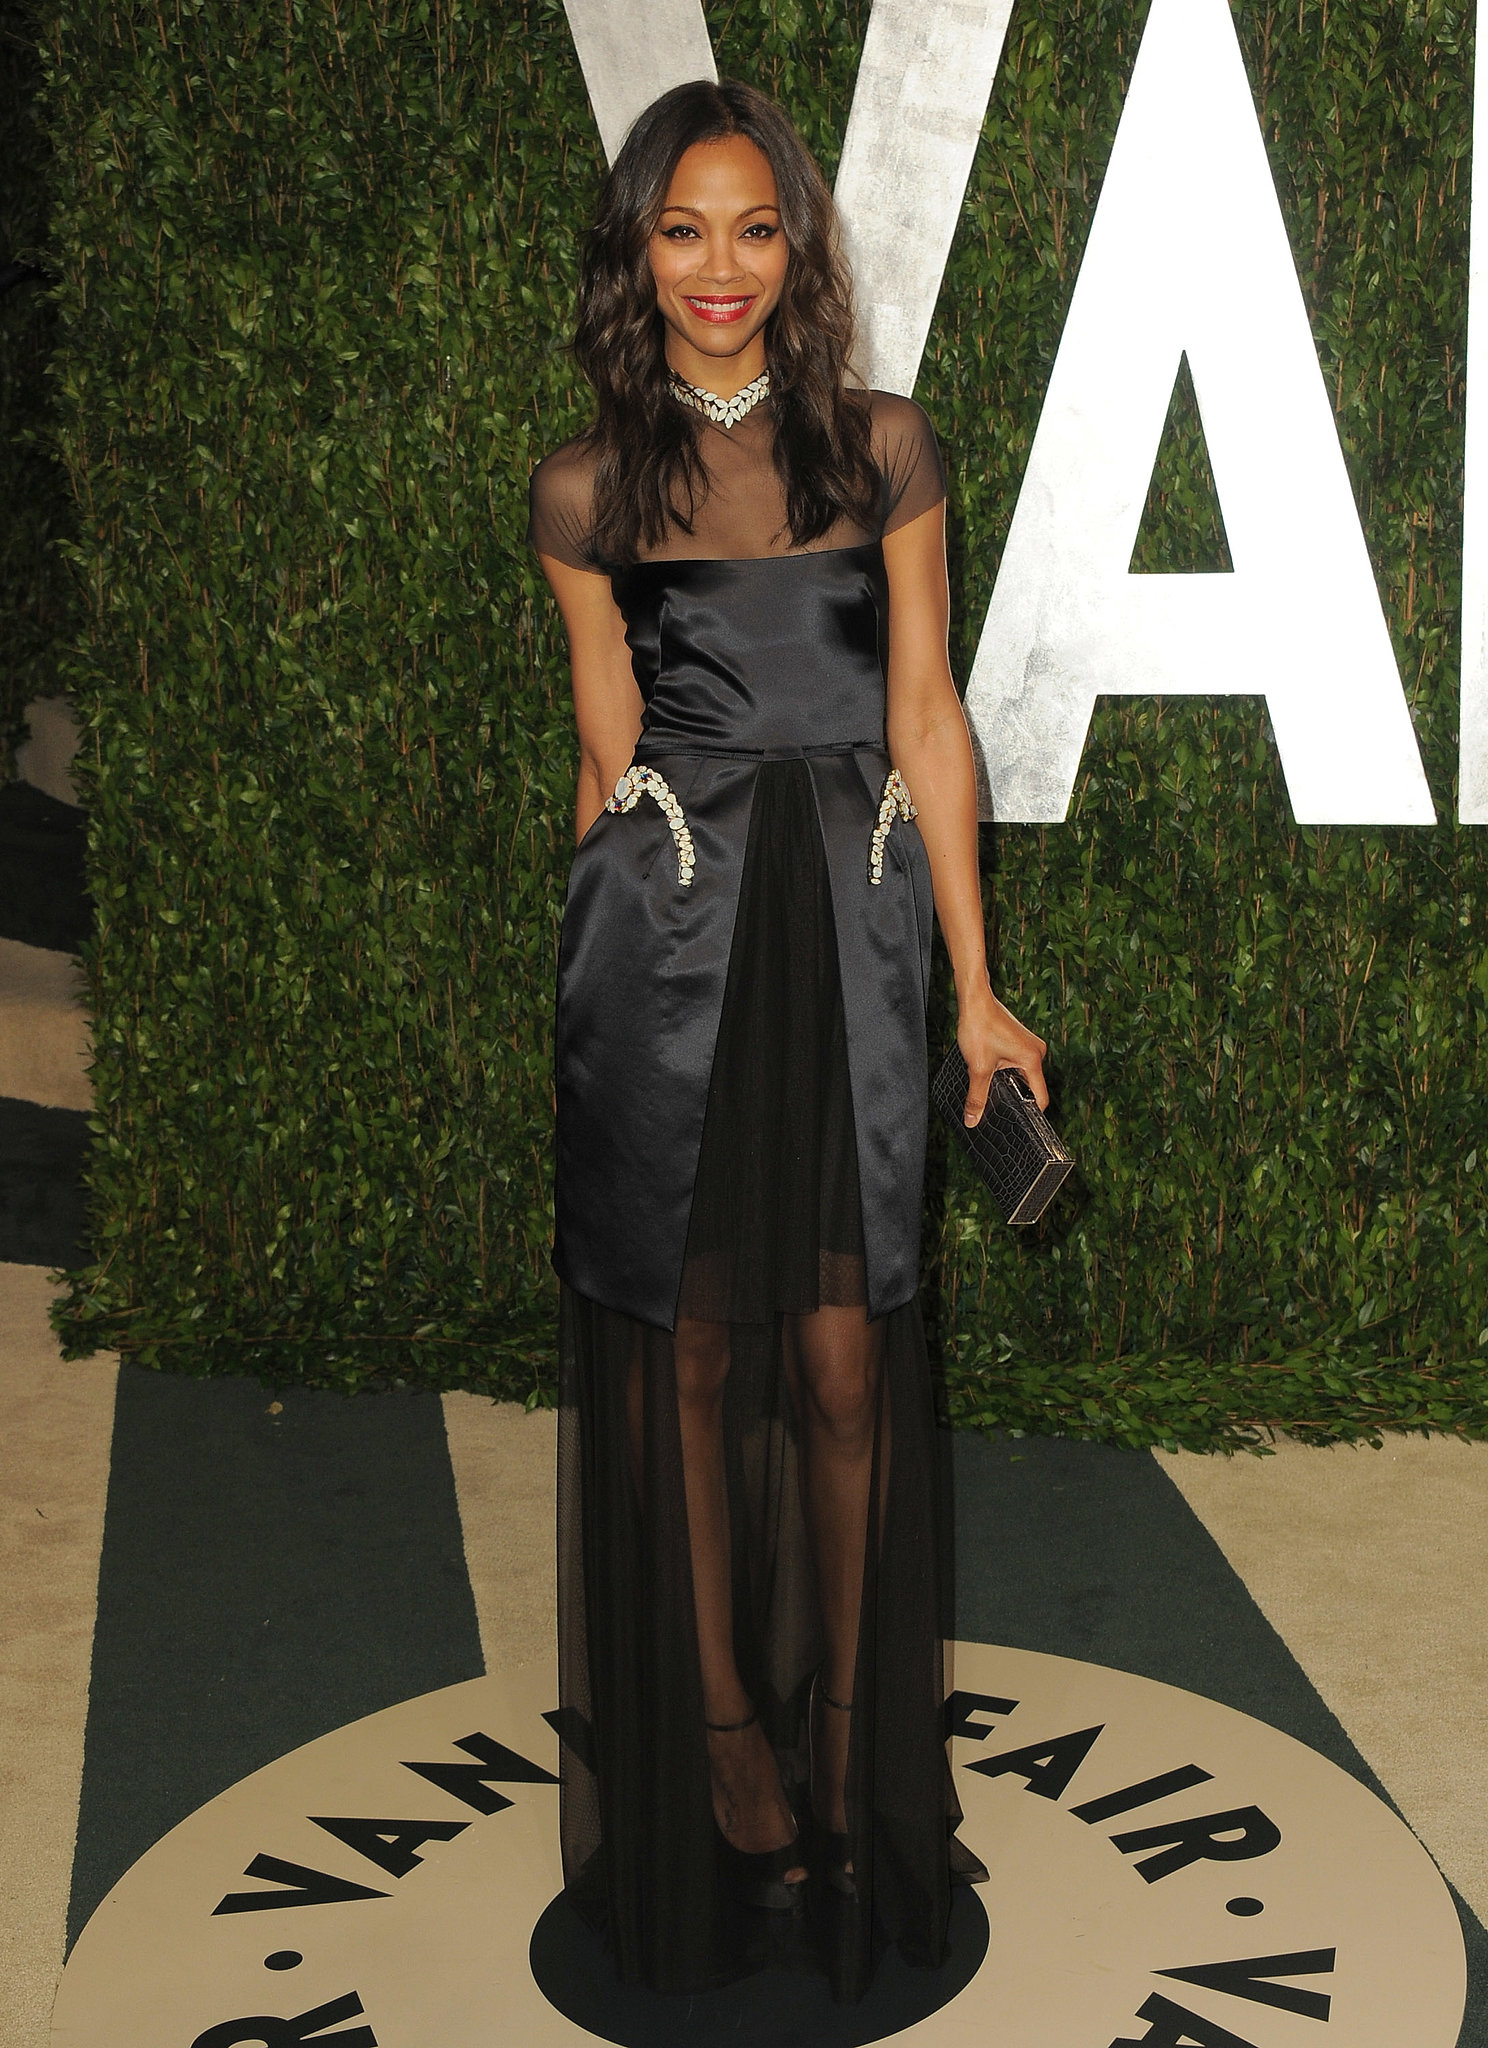 She wowed at the 2012 Vanity Fair Oscars party in this elegant (and sheer) Marios Schwab gown.